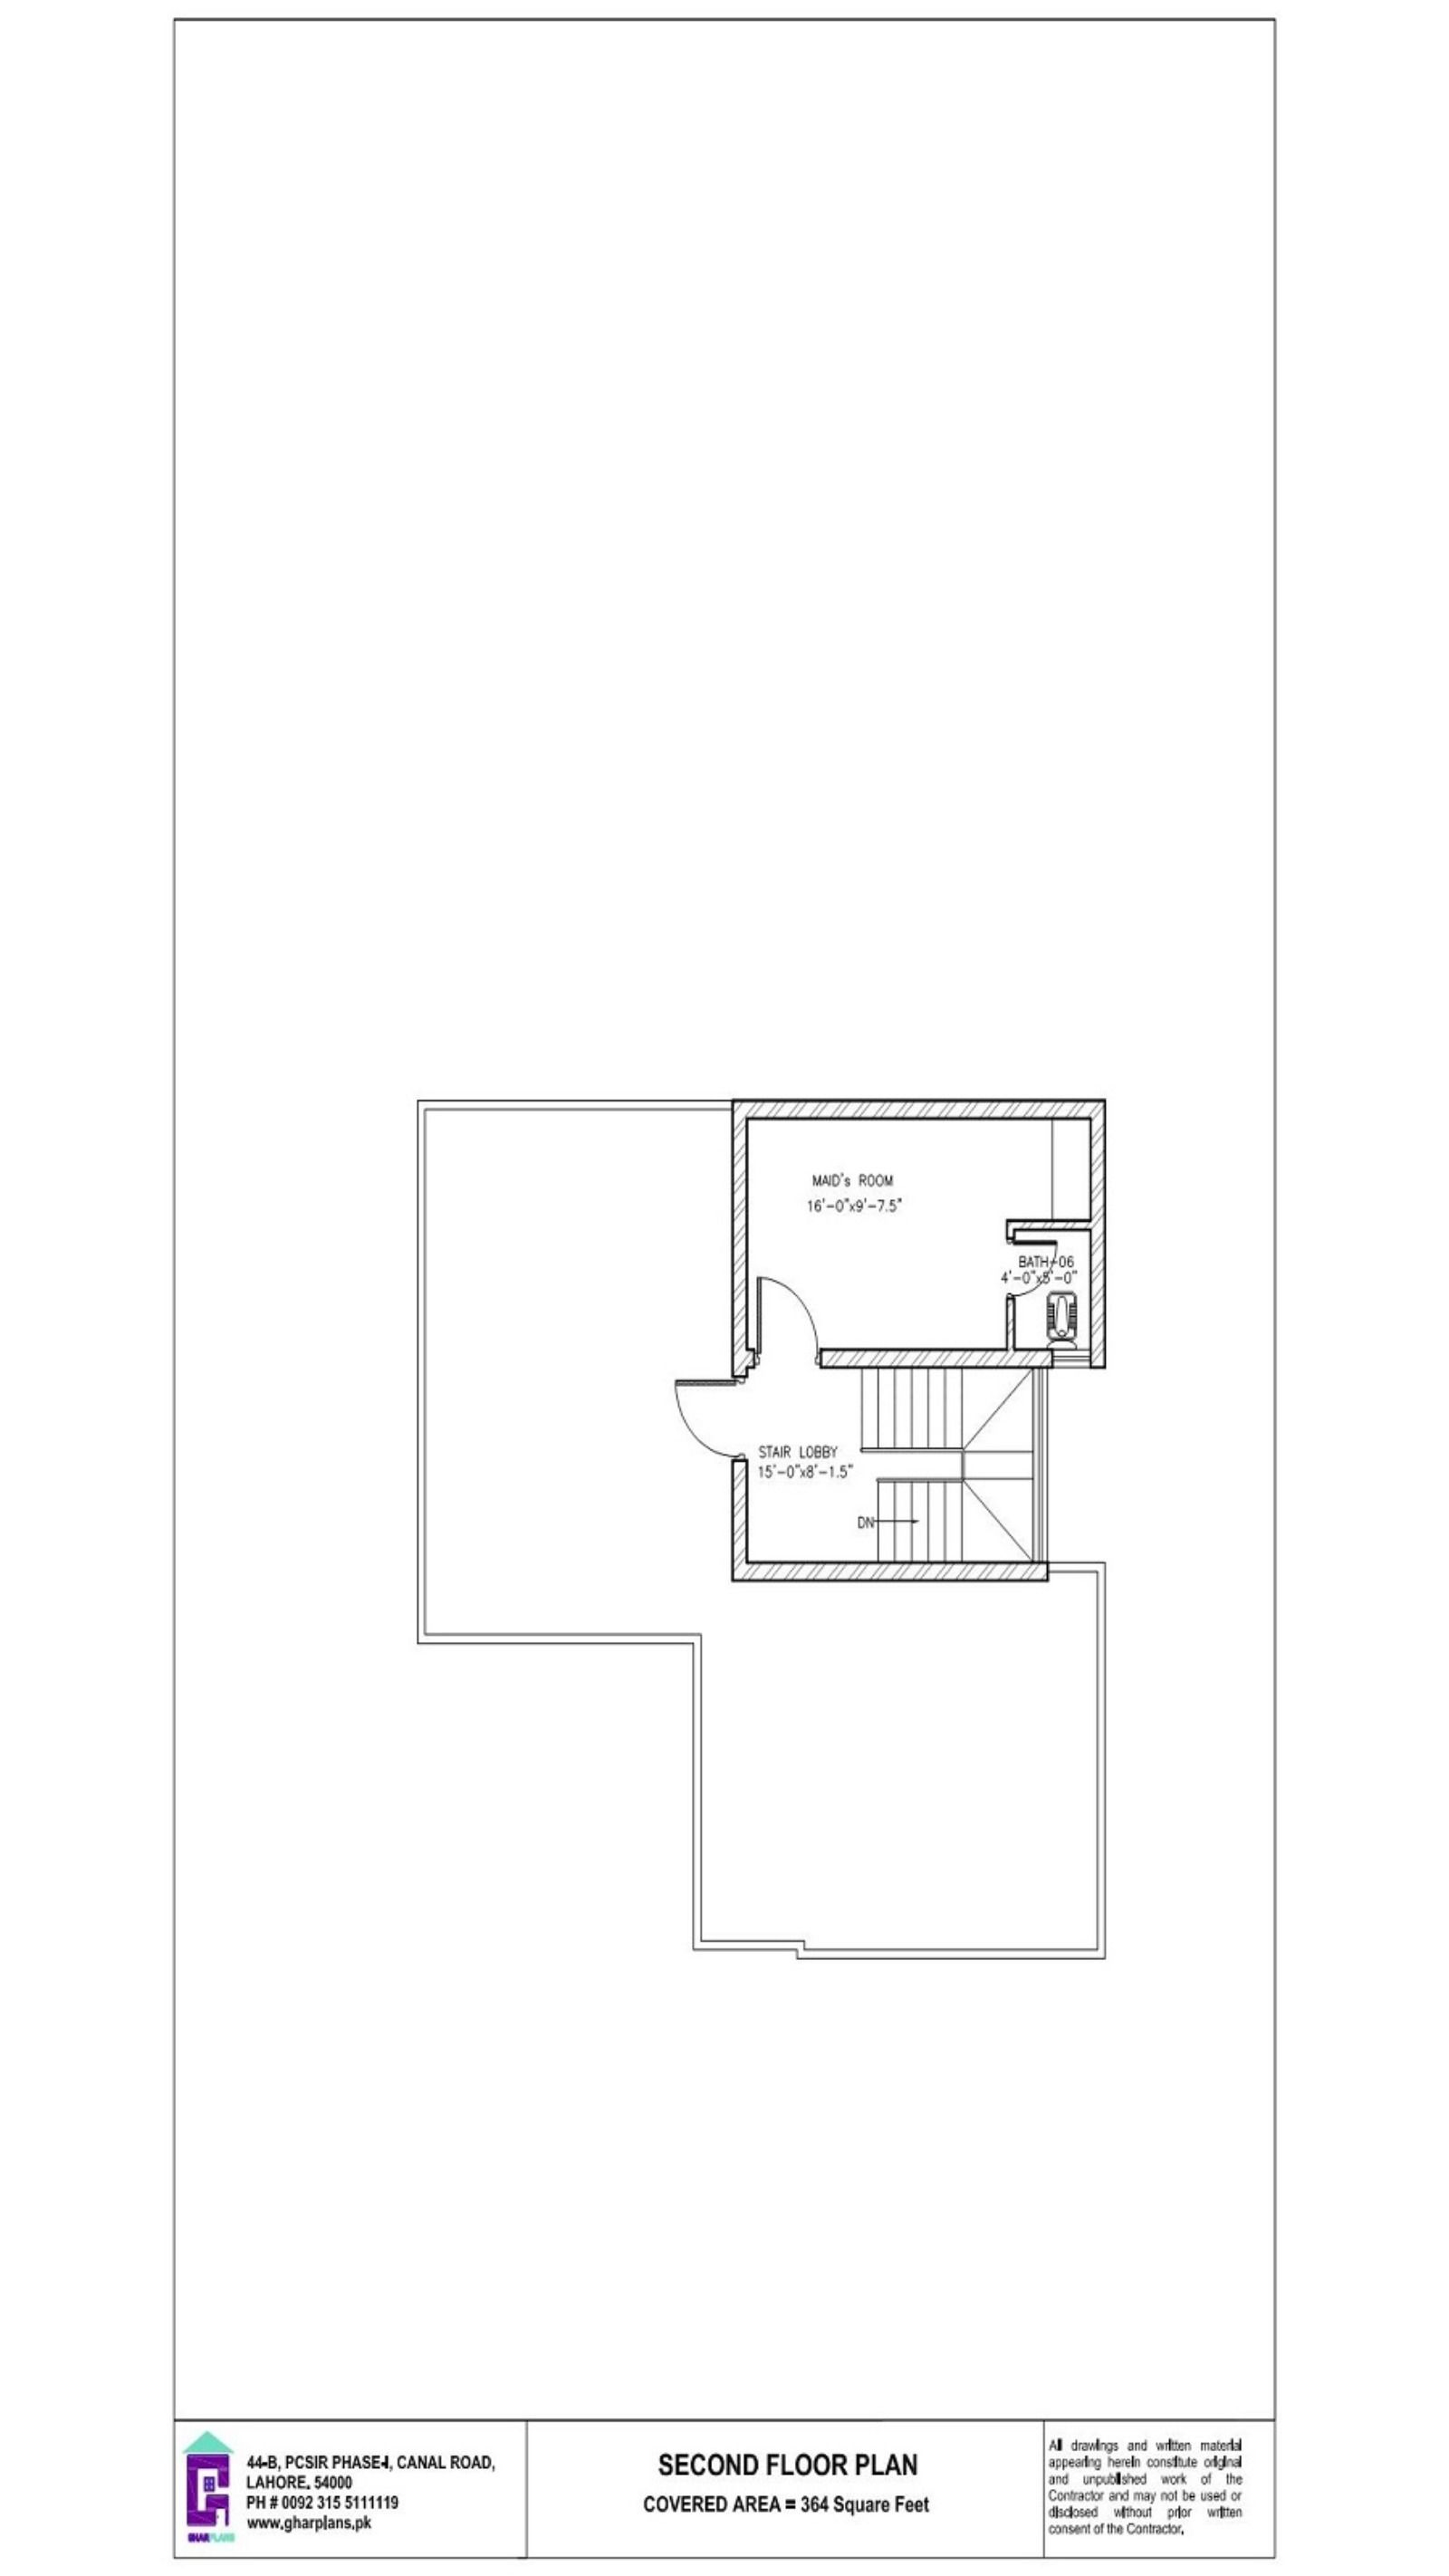 Room Floor Plan Designer Free: 19 Marla House Plan 45 Ft X 95 Ft (With Images)